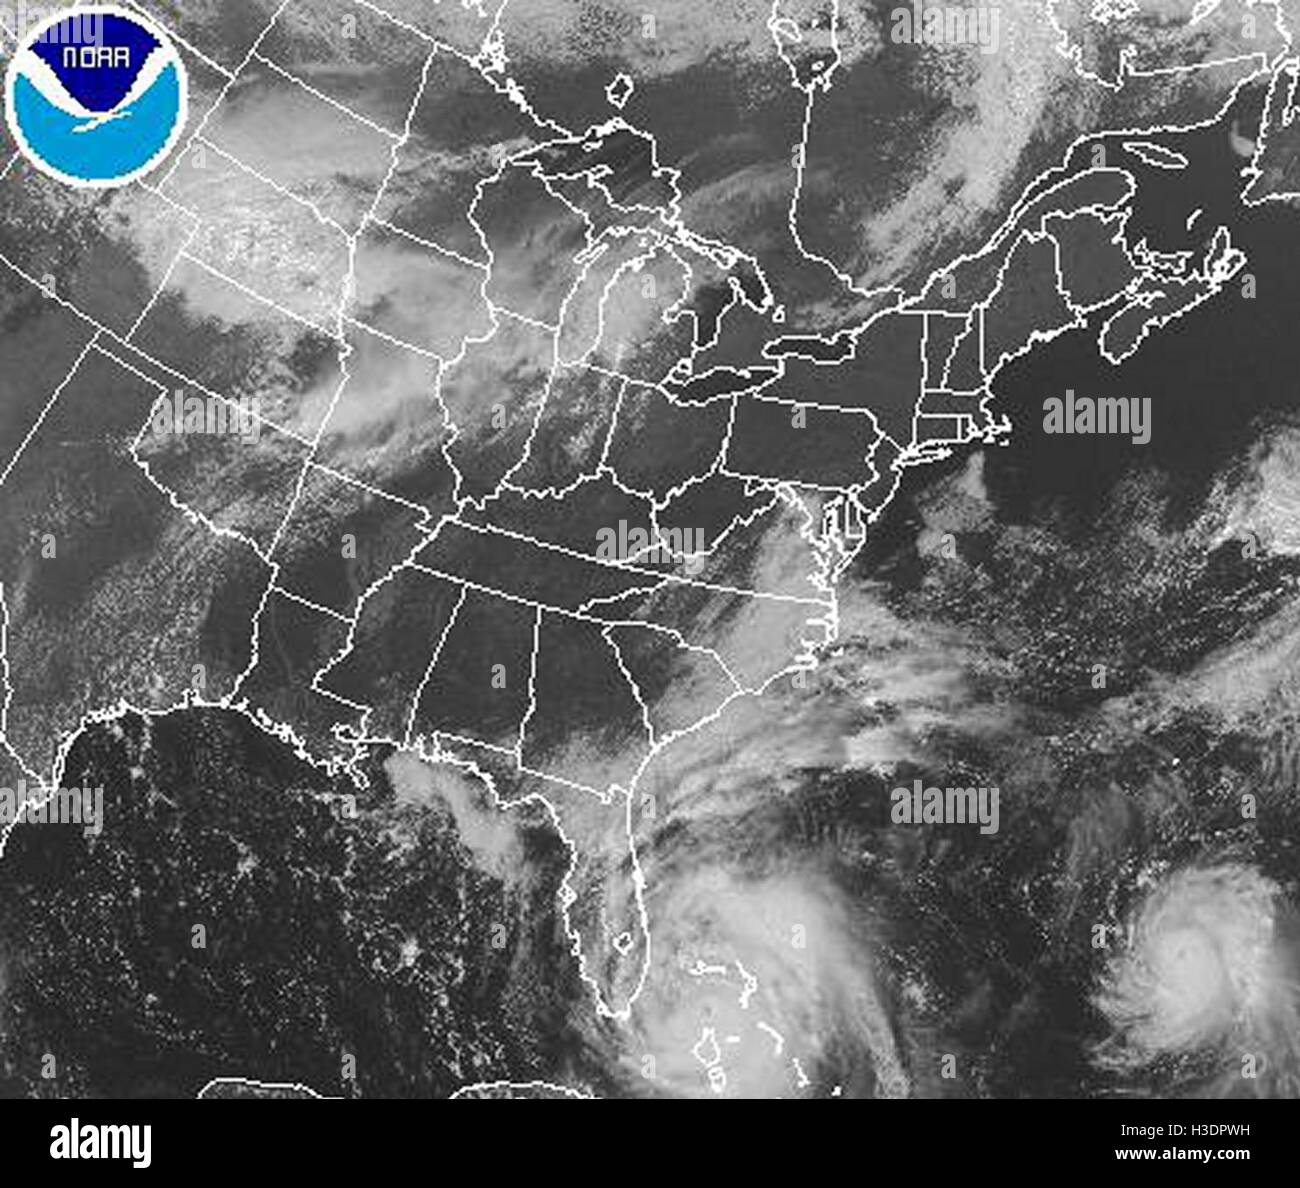 Silver Spring Maryland United States Oct True Color - Live weather satellite images